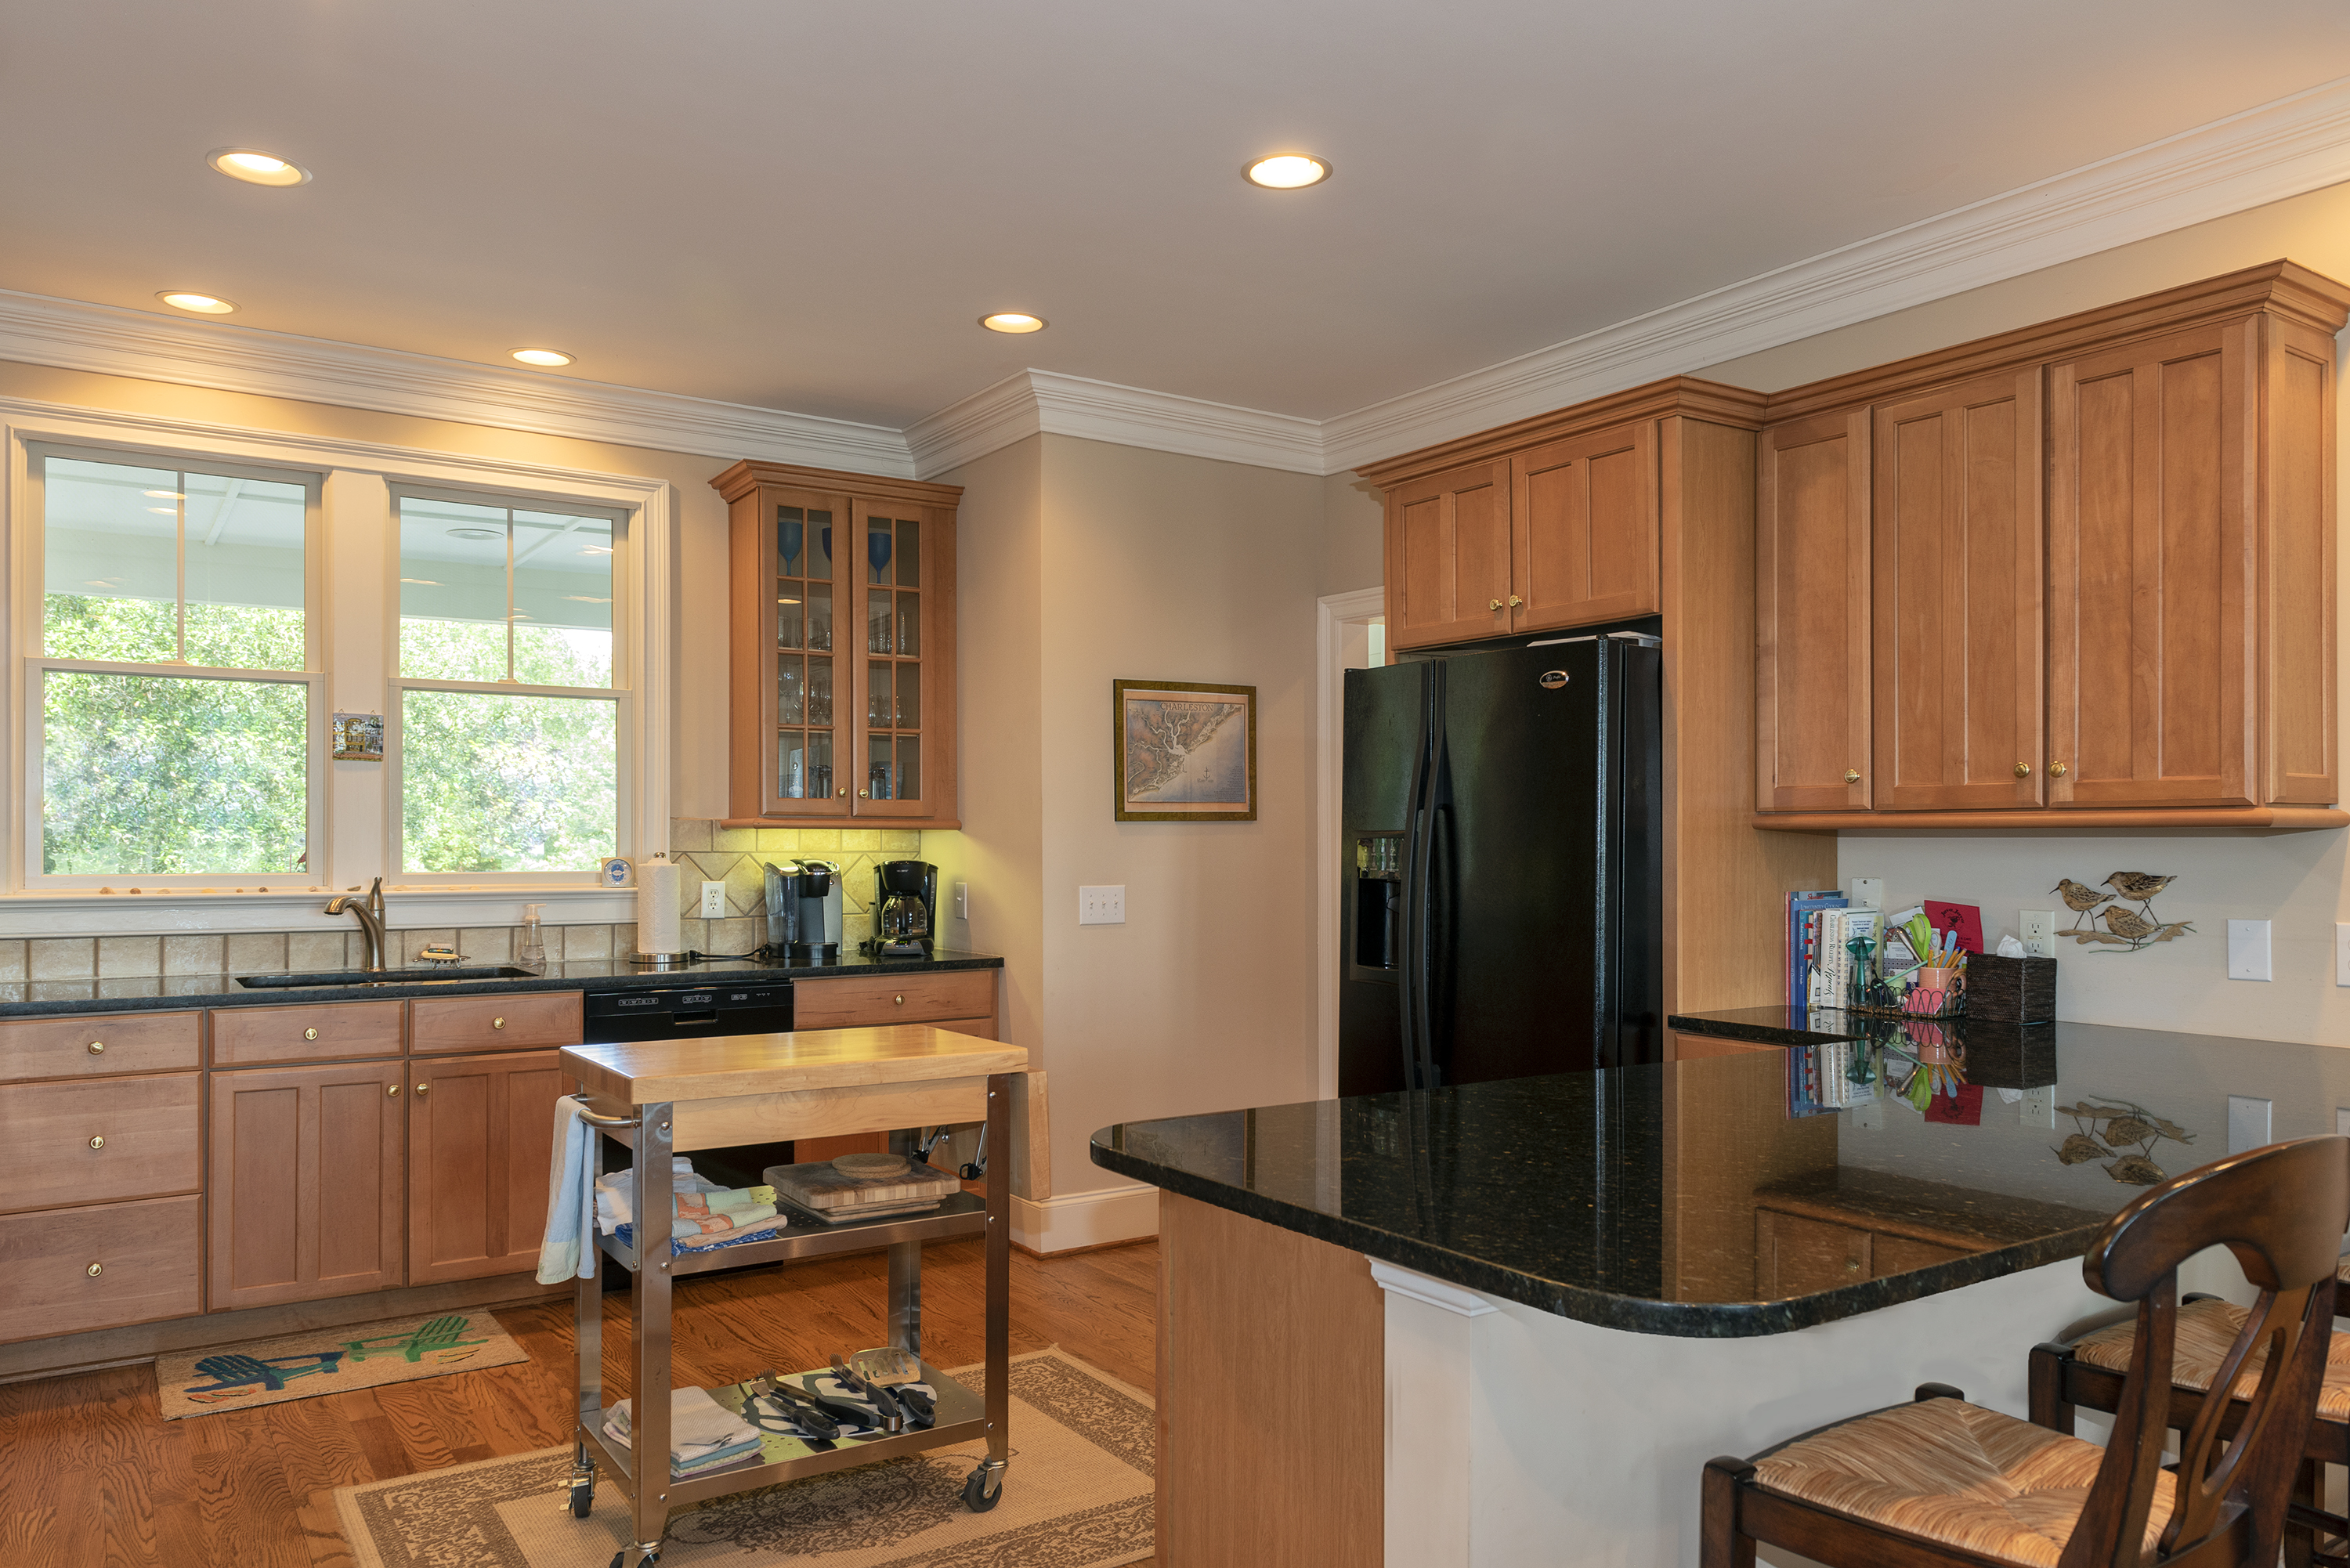 The remodeled kitchen is full of natural light.